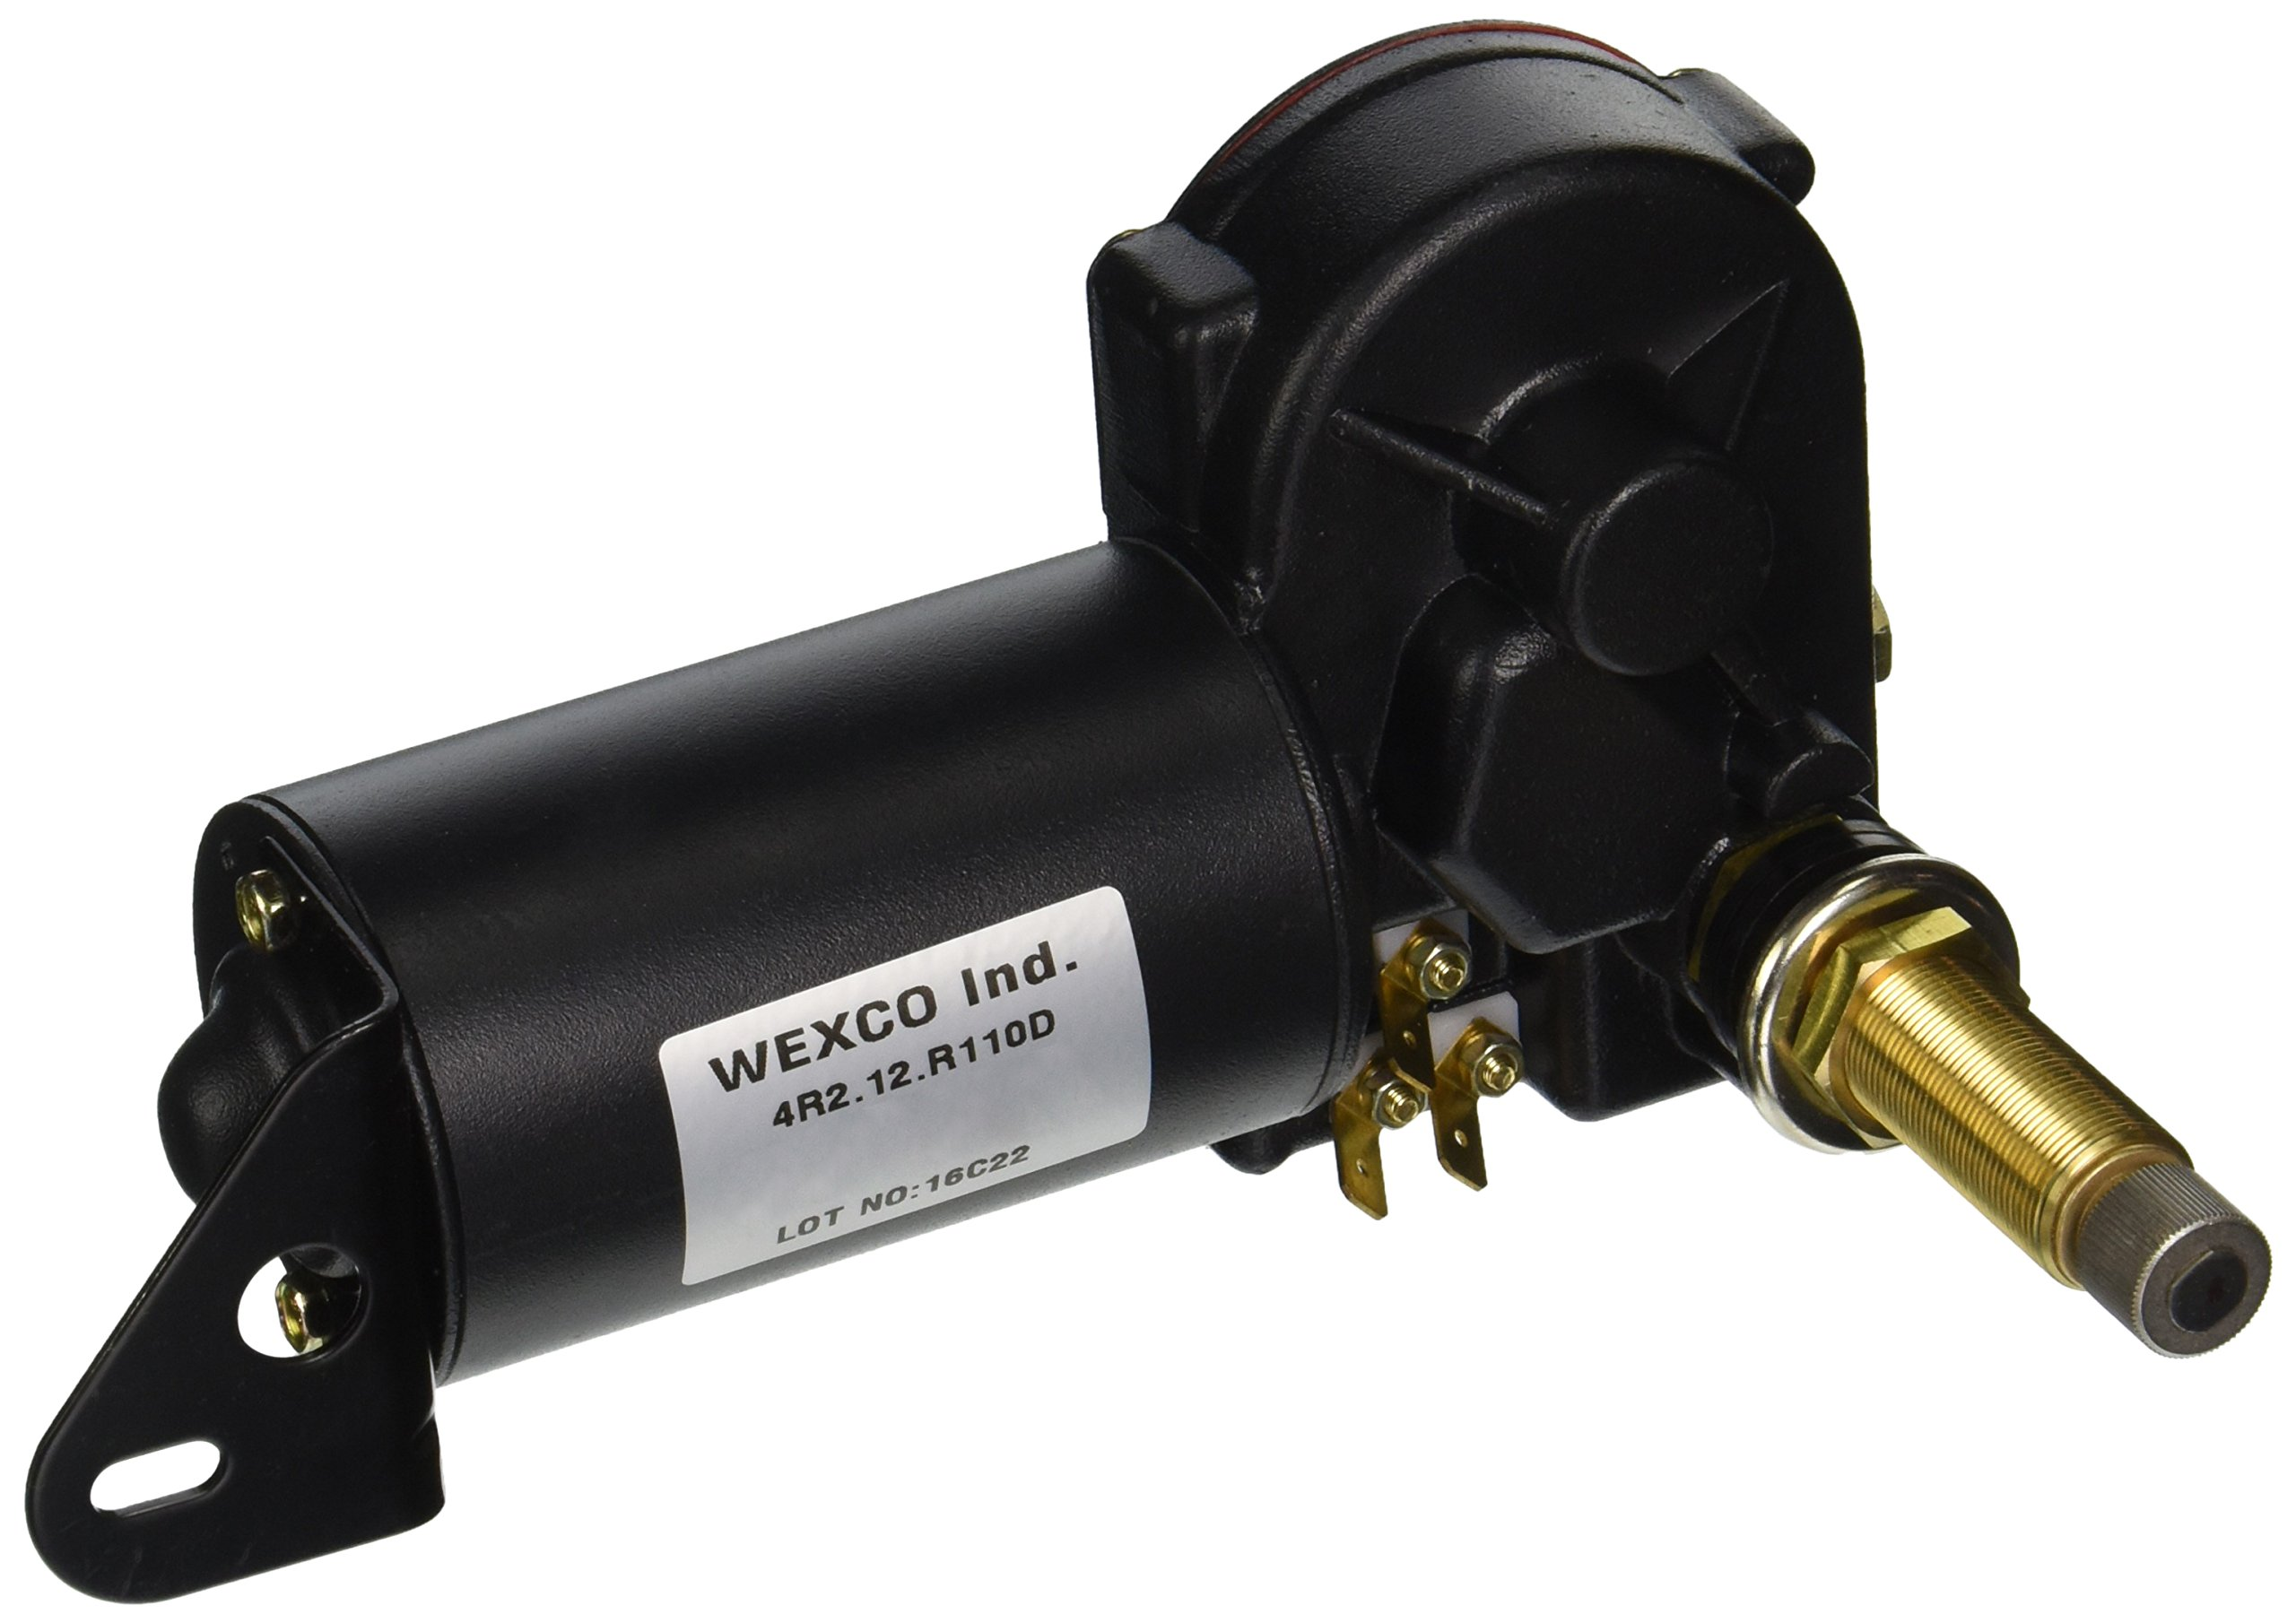 Wexco 4R Wiper Motor-4R2.12.R110D 2.5'' Shaft, 12 Volts 3 spade wiring terminals (black) by Wexco